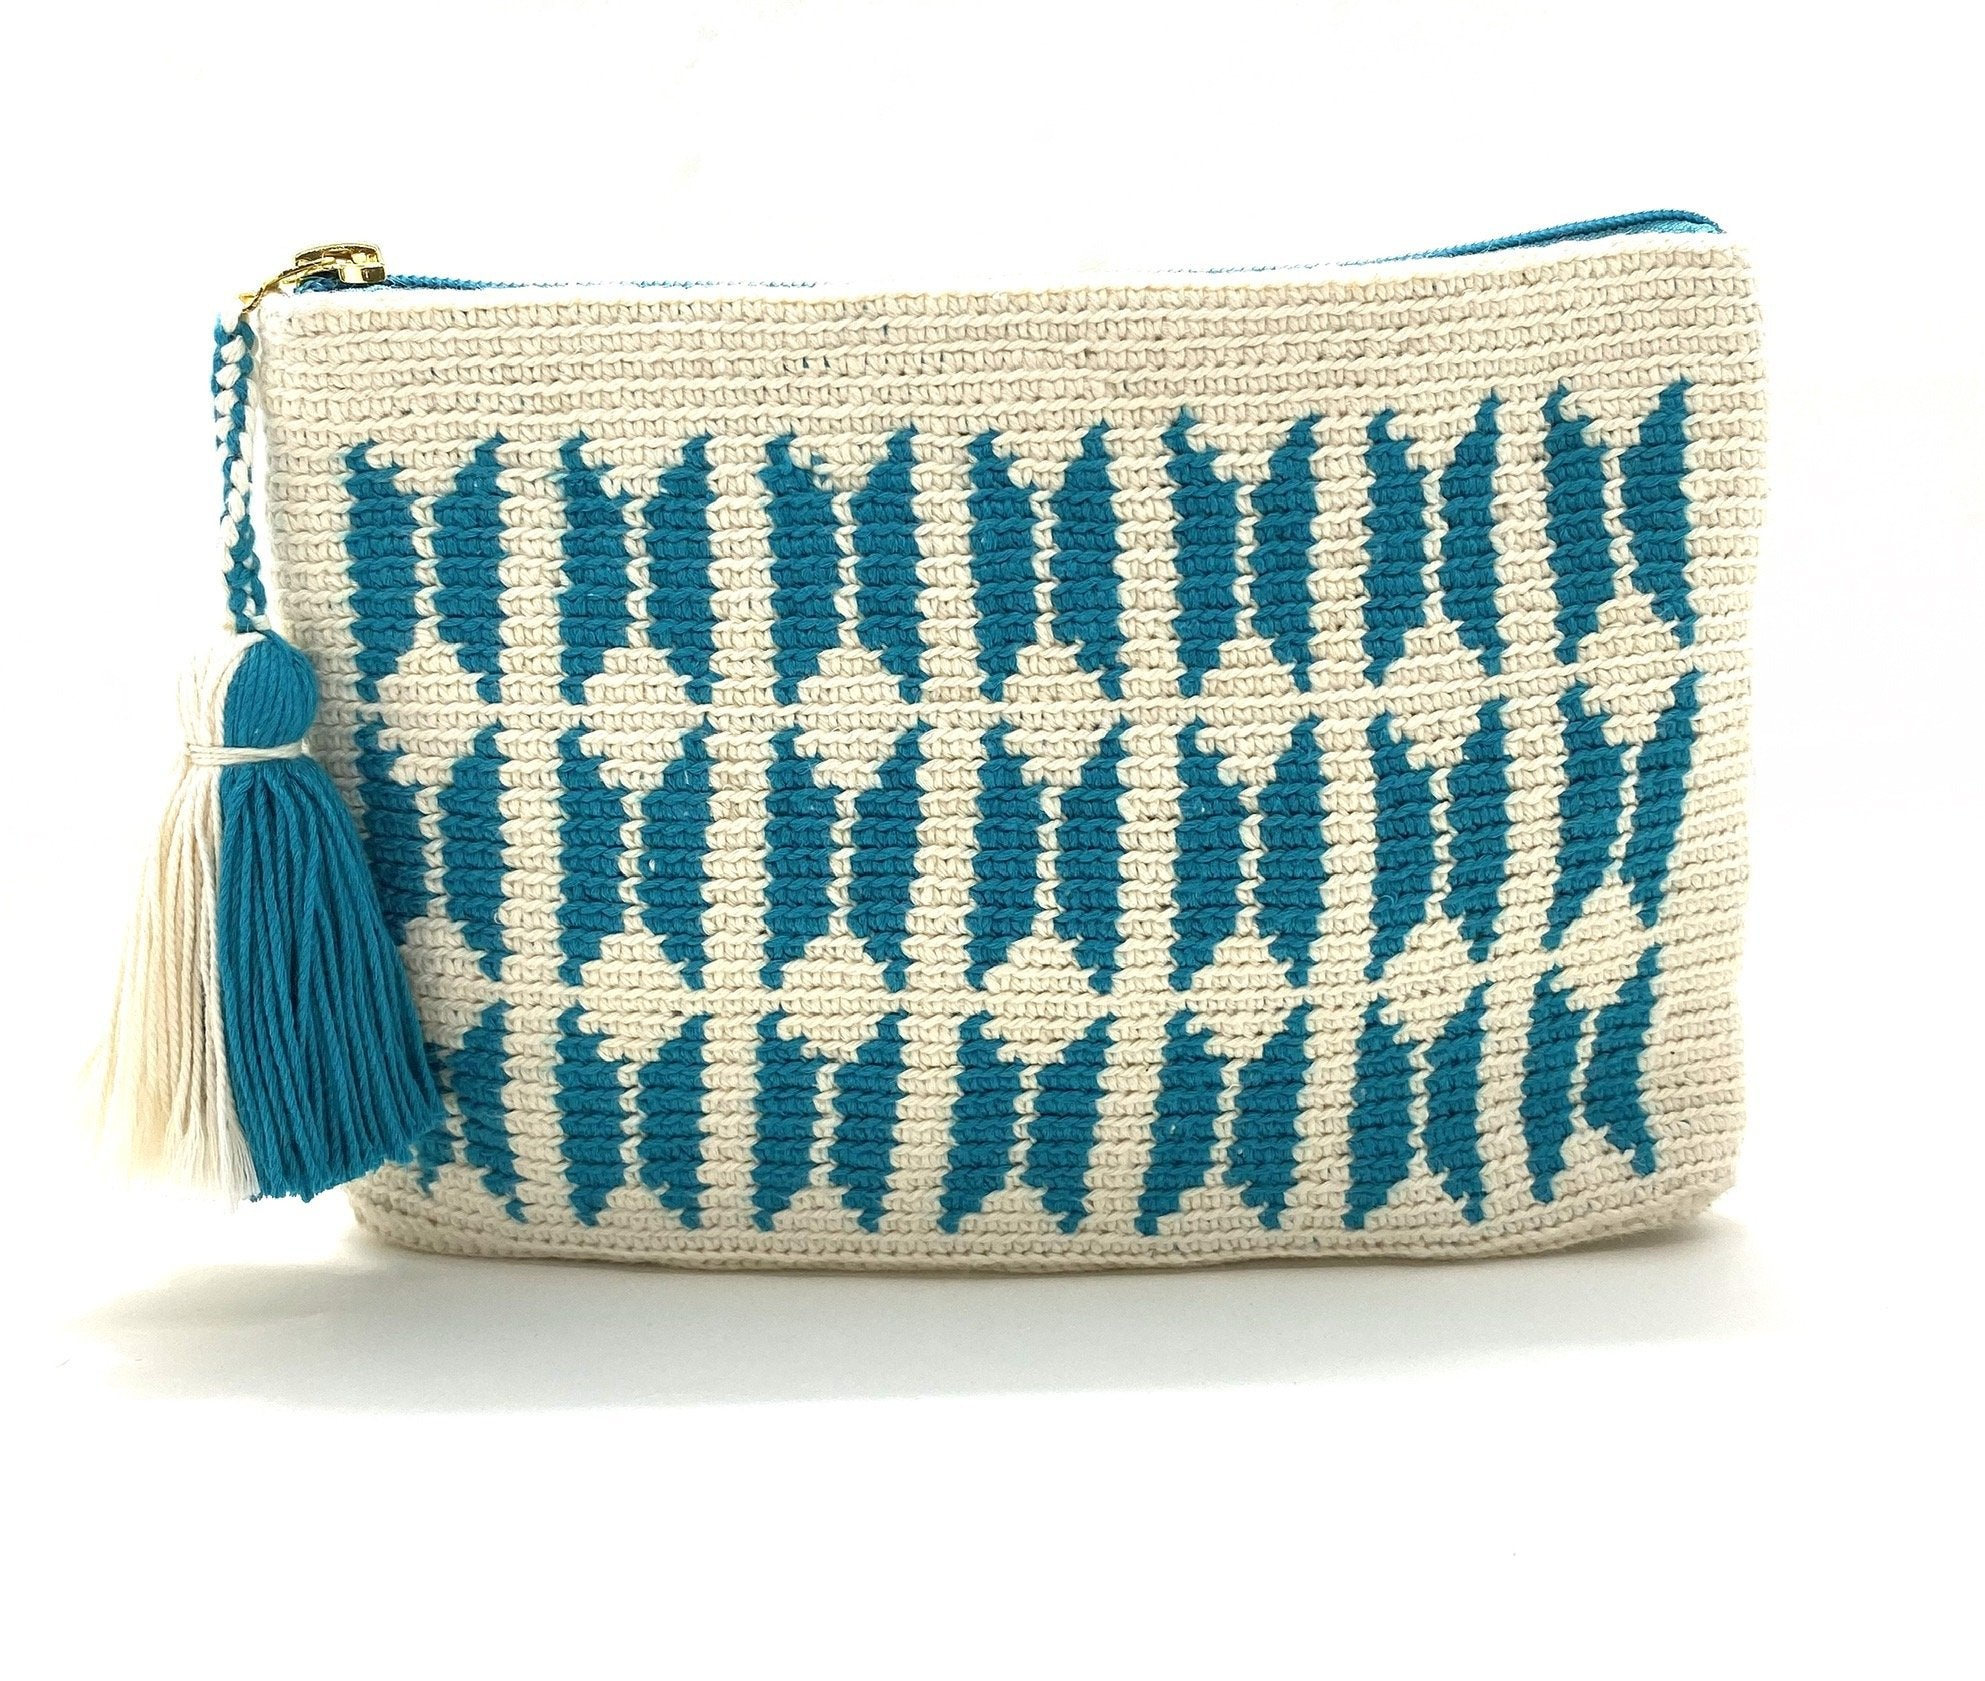 Clutch with off white body, teal butterfly pattern and a tassel